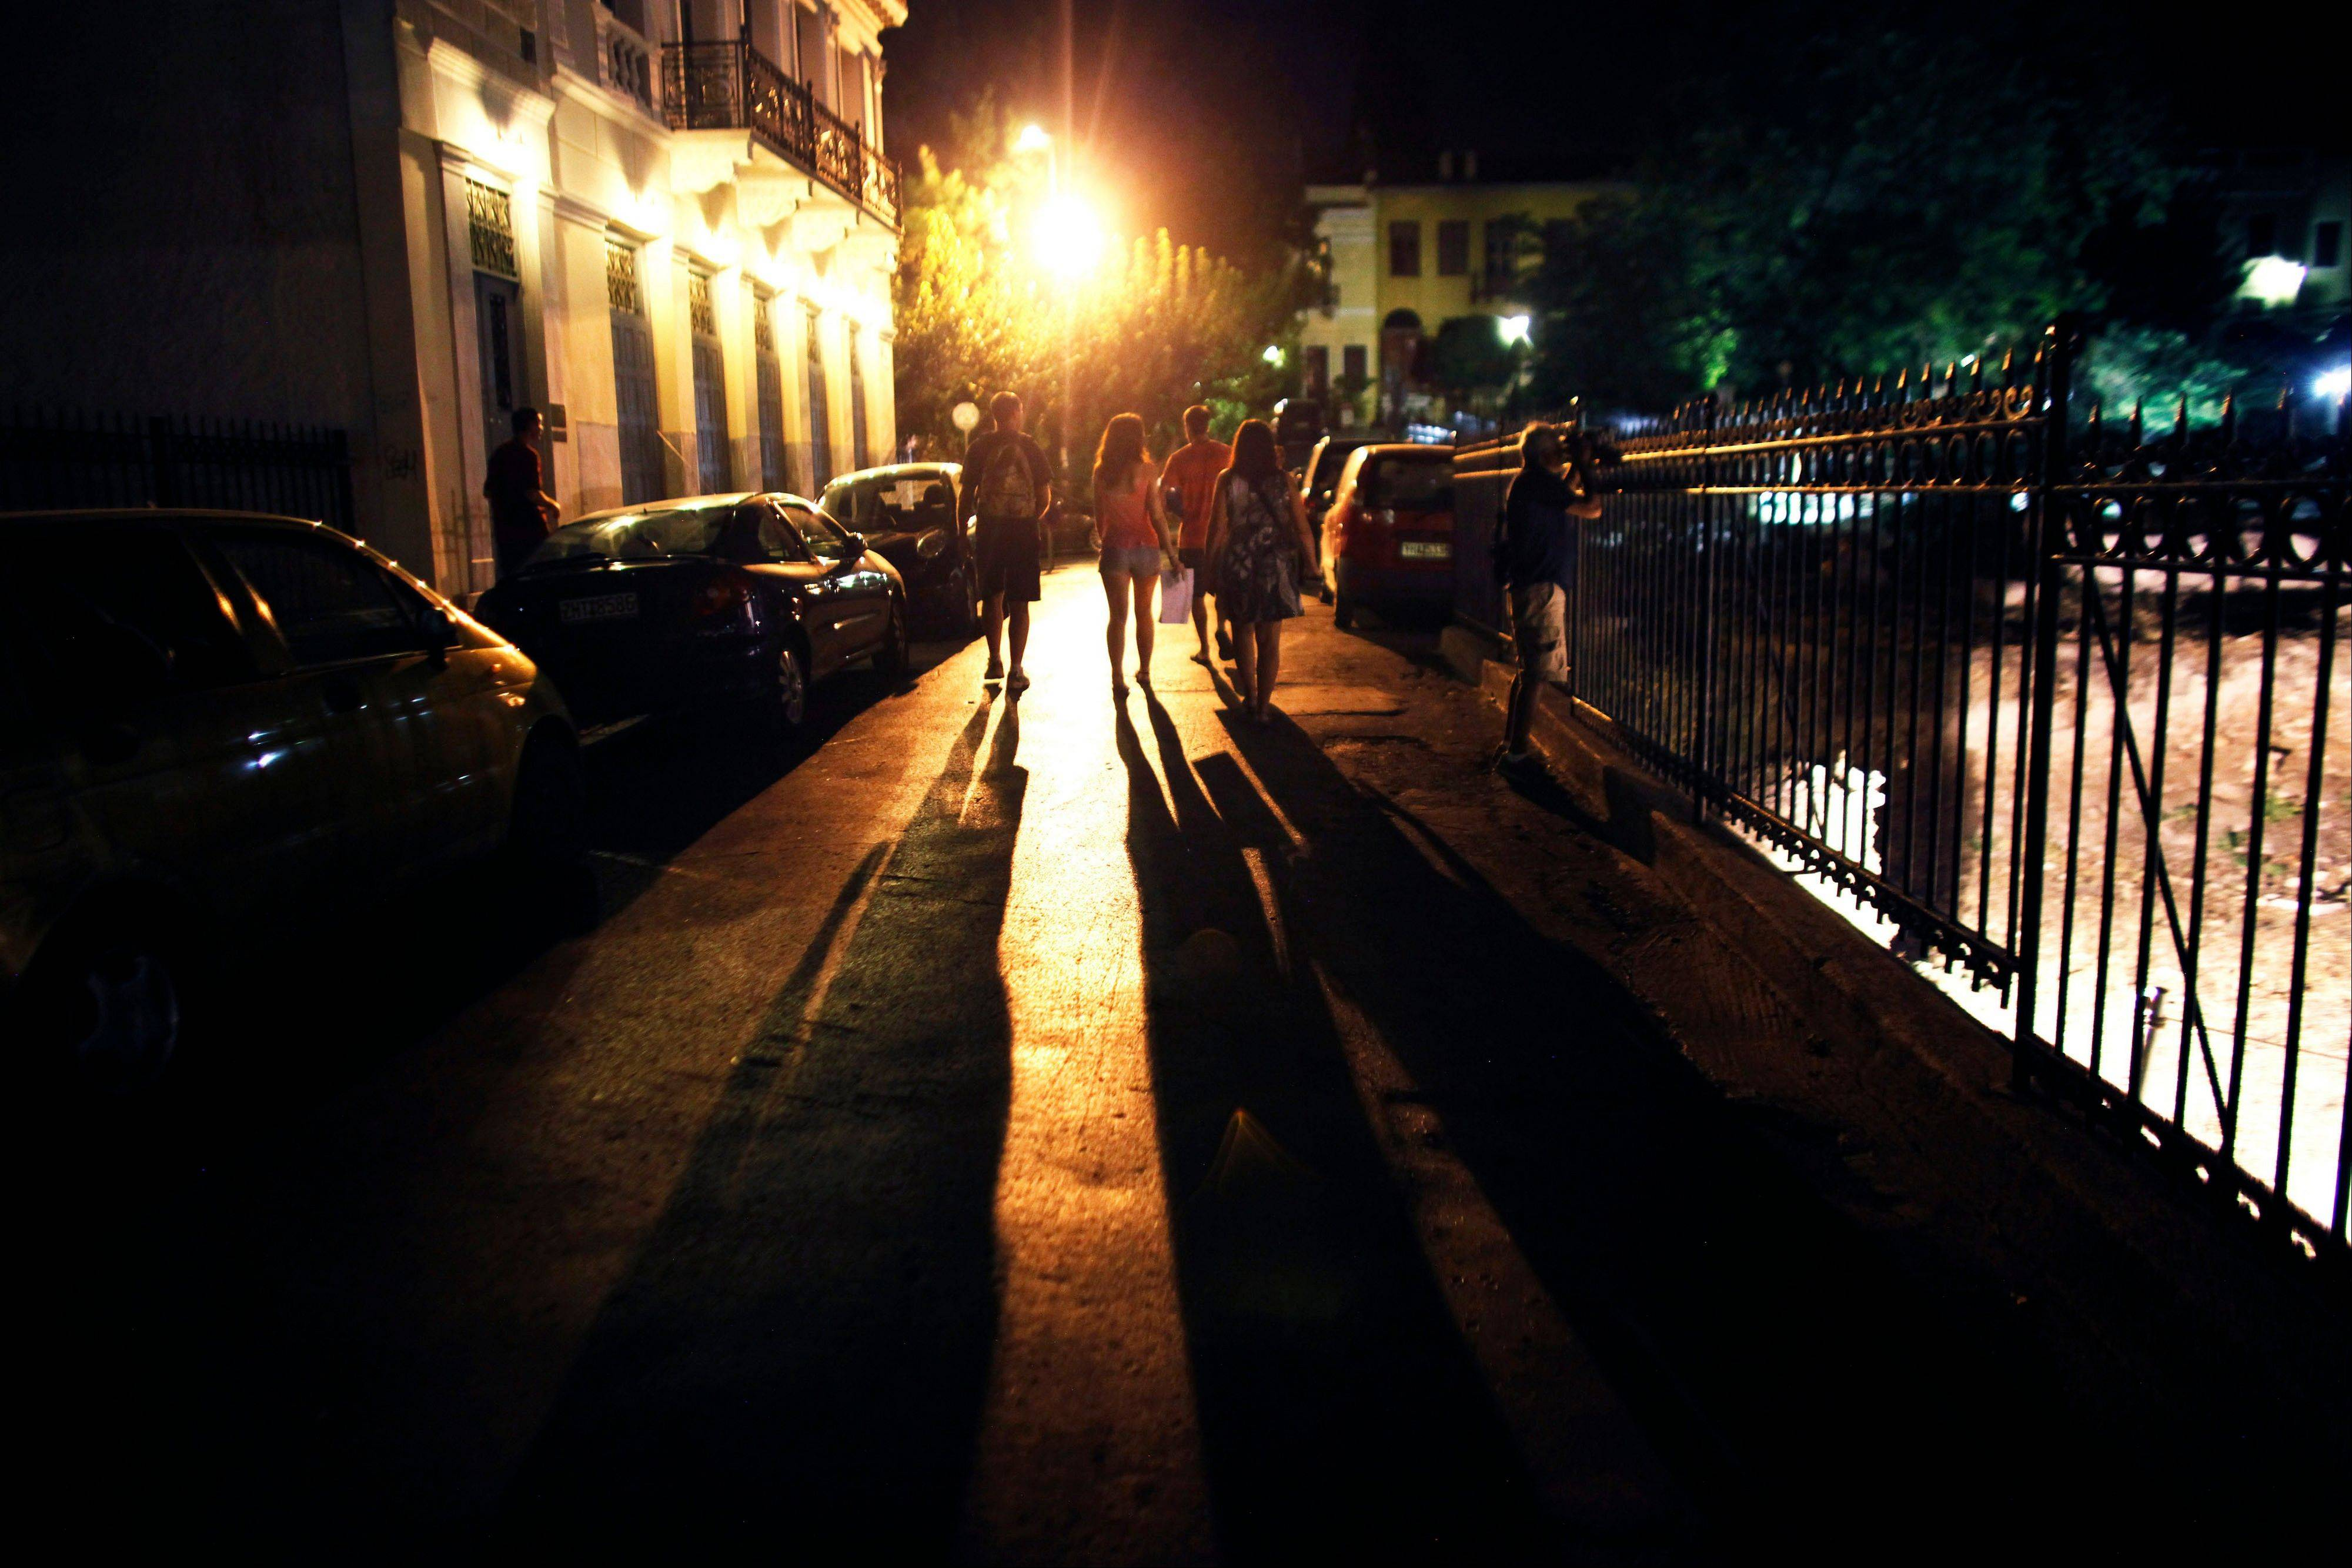 Pedestrians walk along a street illuminated by lights at night in the Plaka district of Athens, Greece.